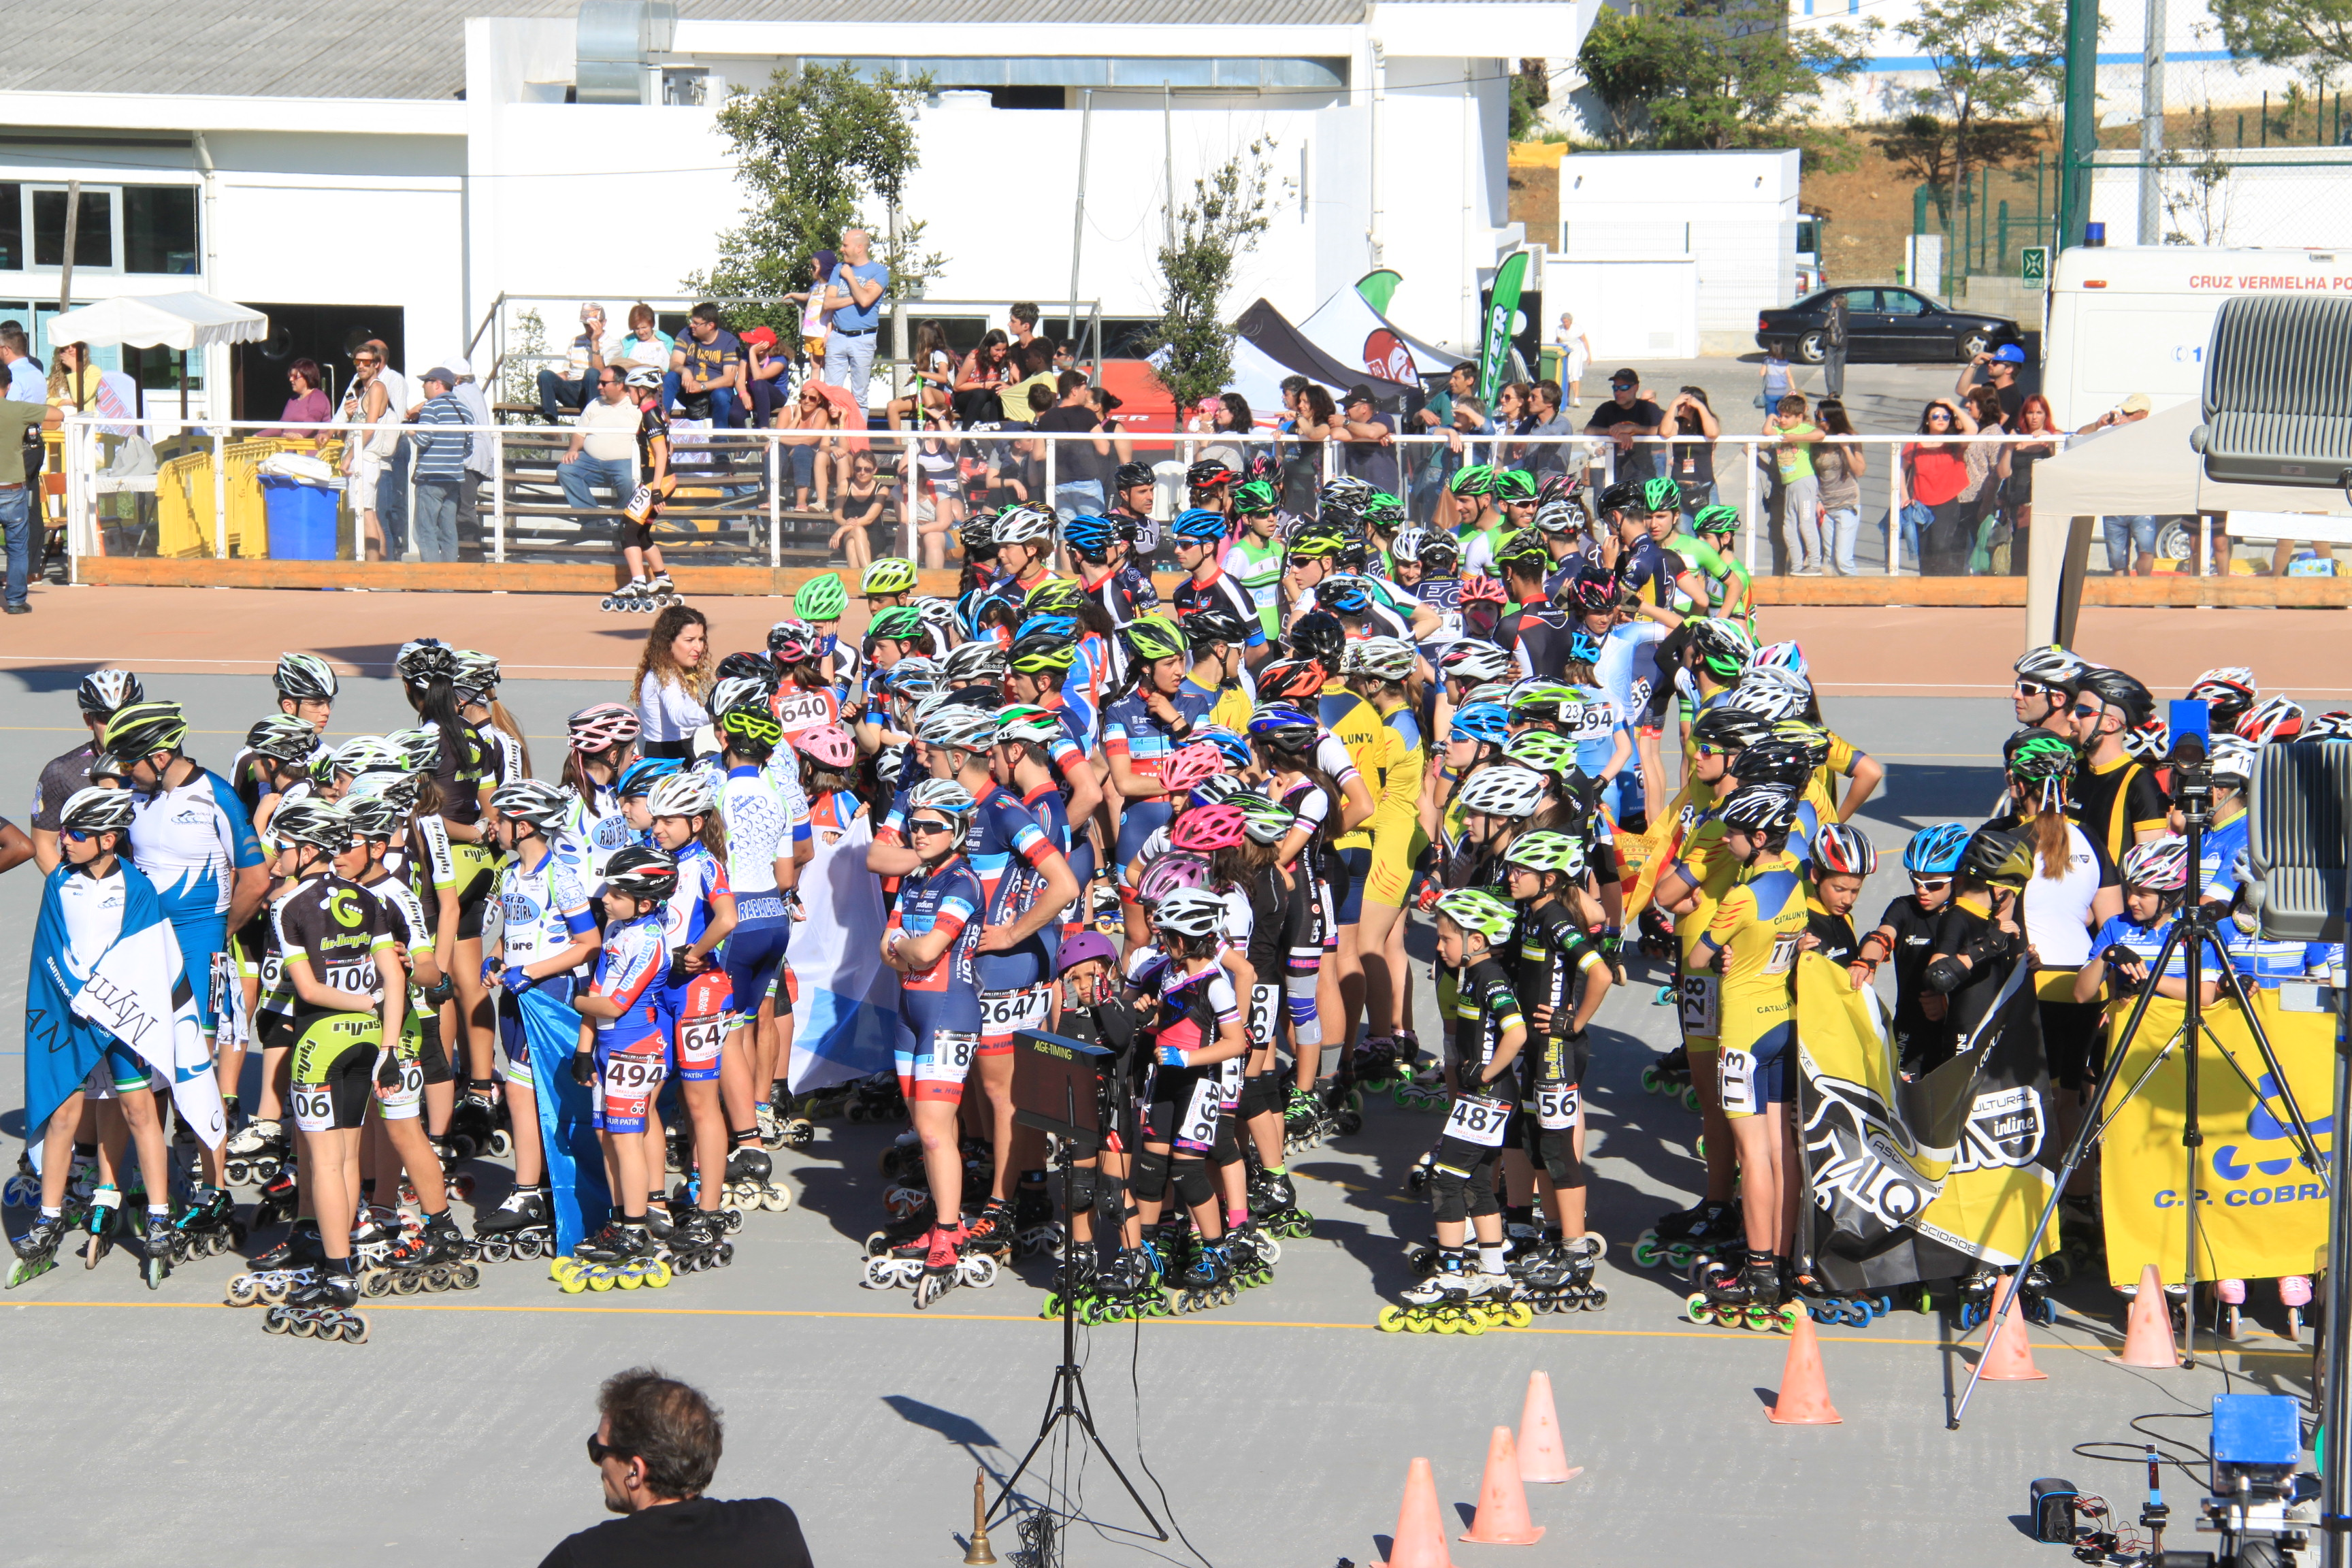 [object object] 540 Athletes ready to participate in Terras do Infante 2019 IMG 5411 1